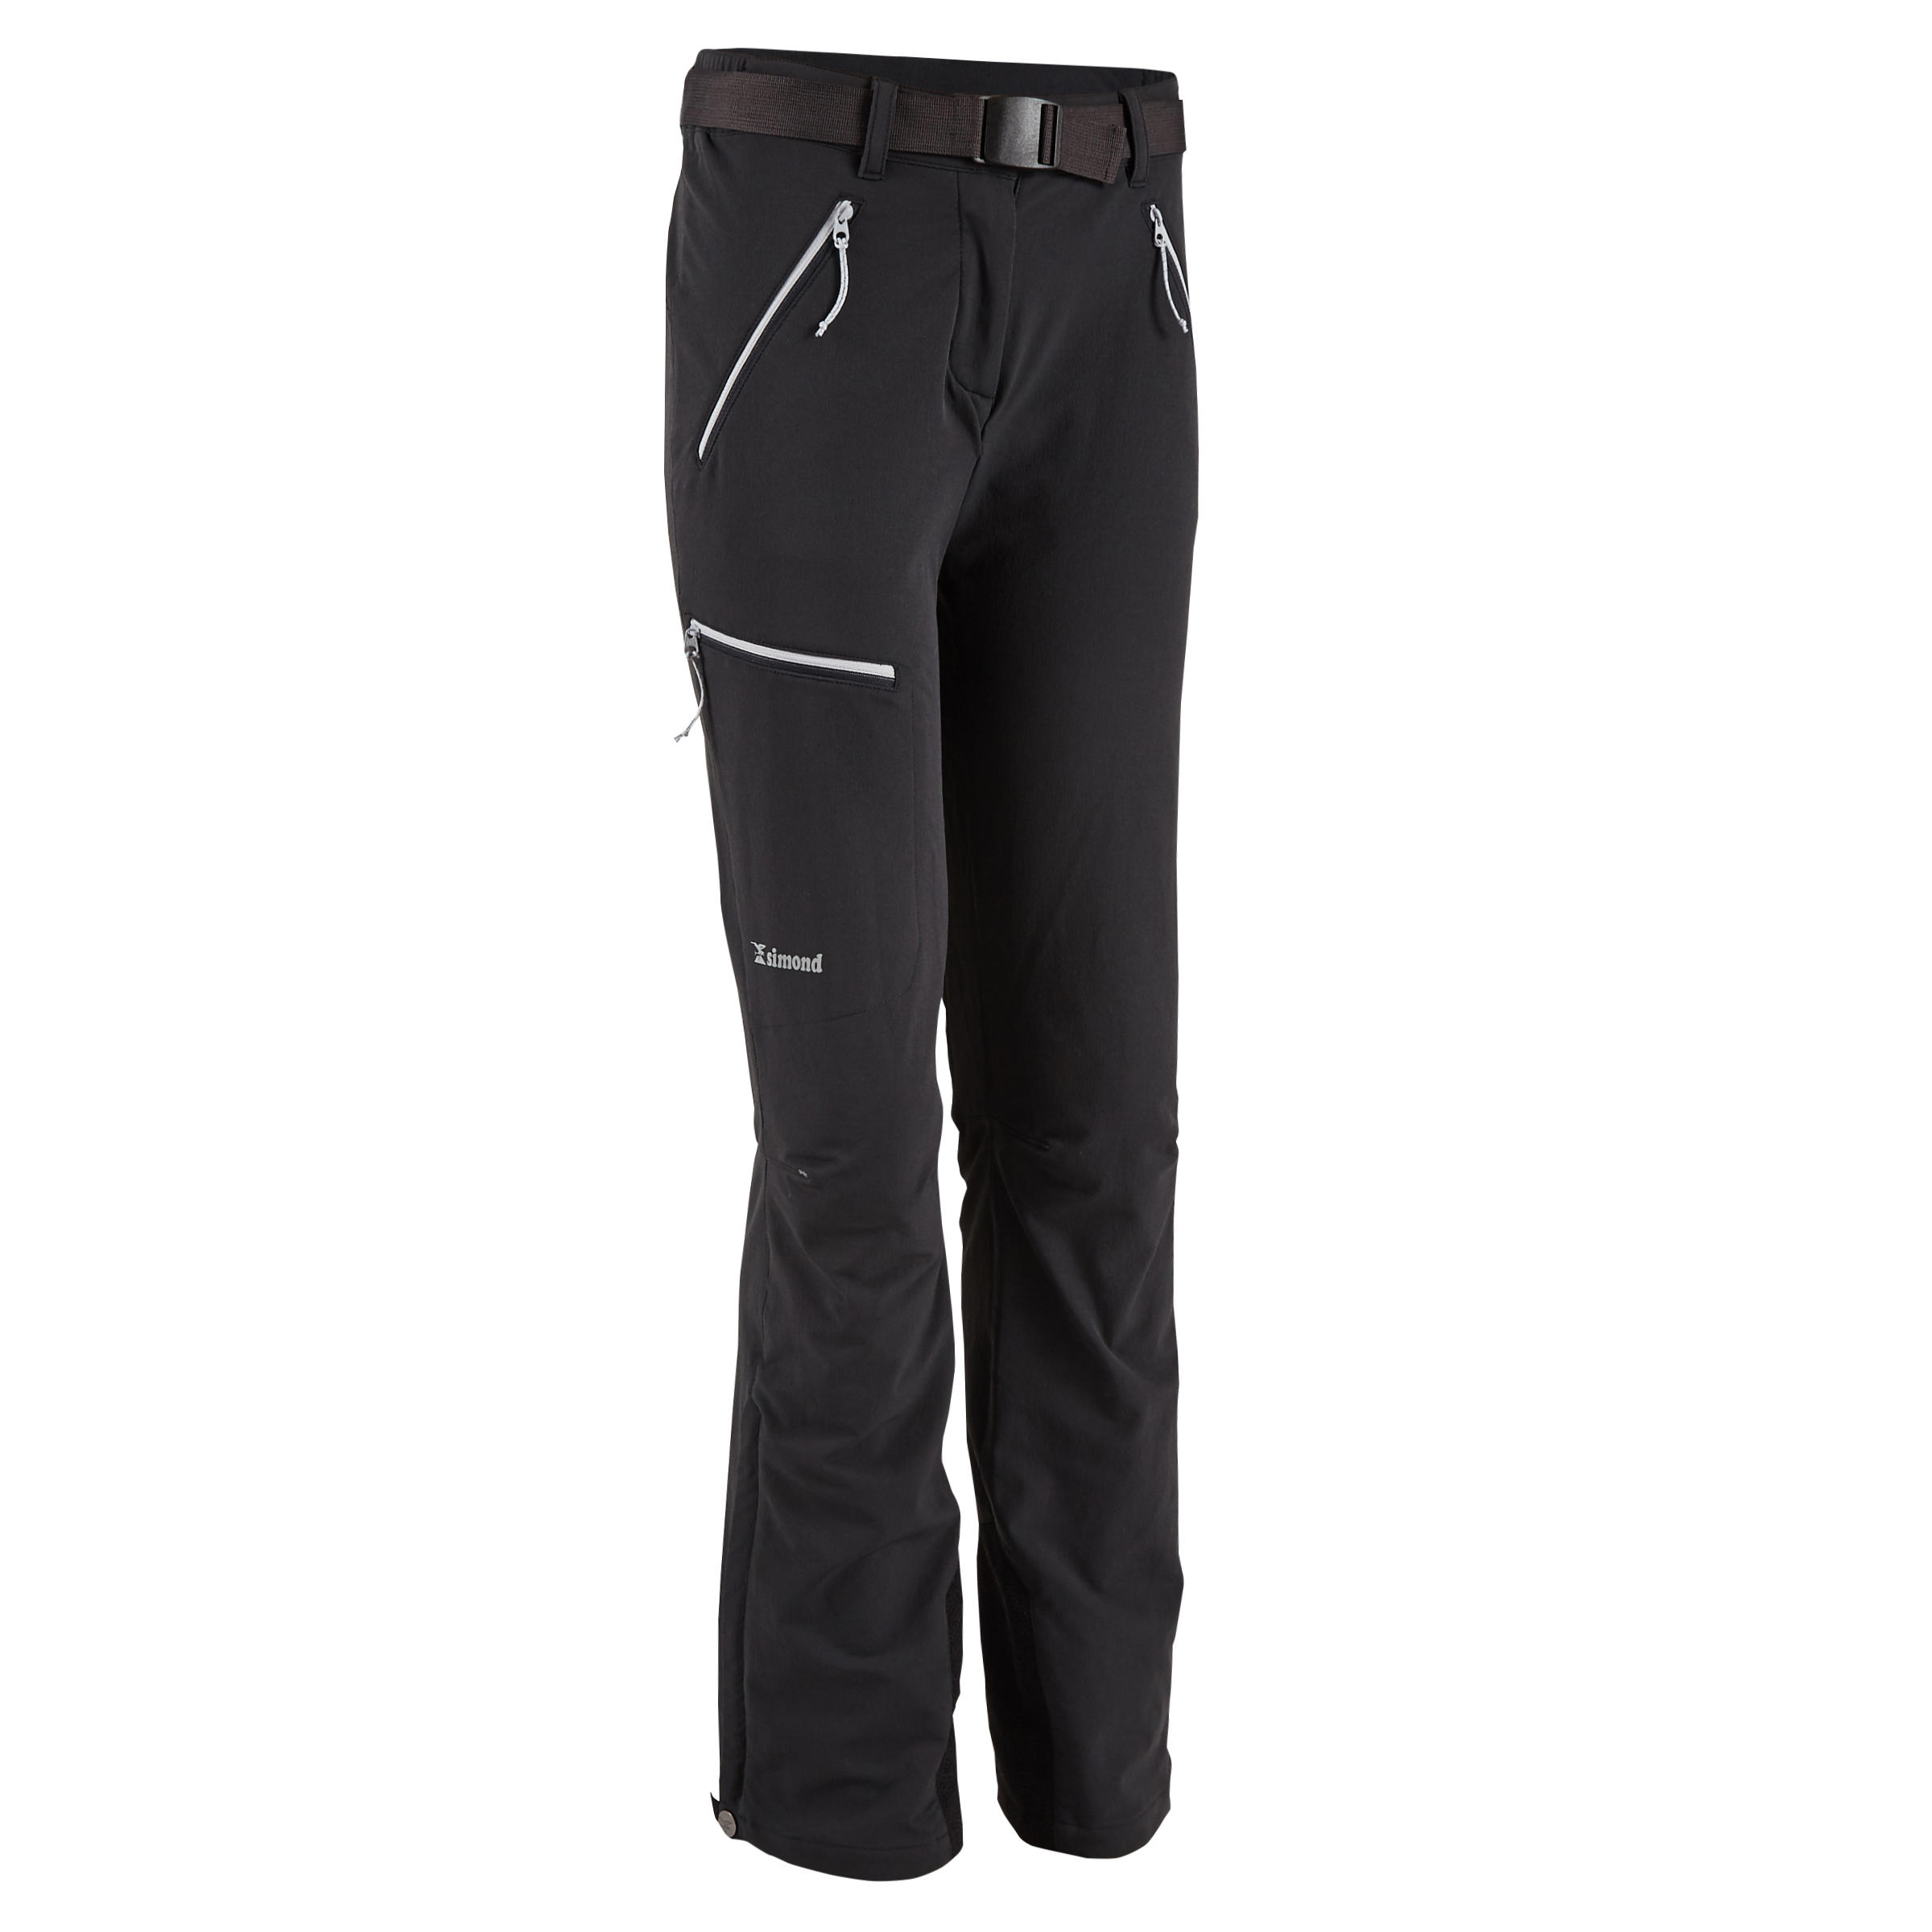 Pantalon ALPINISM LIGHT damă